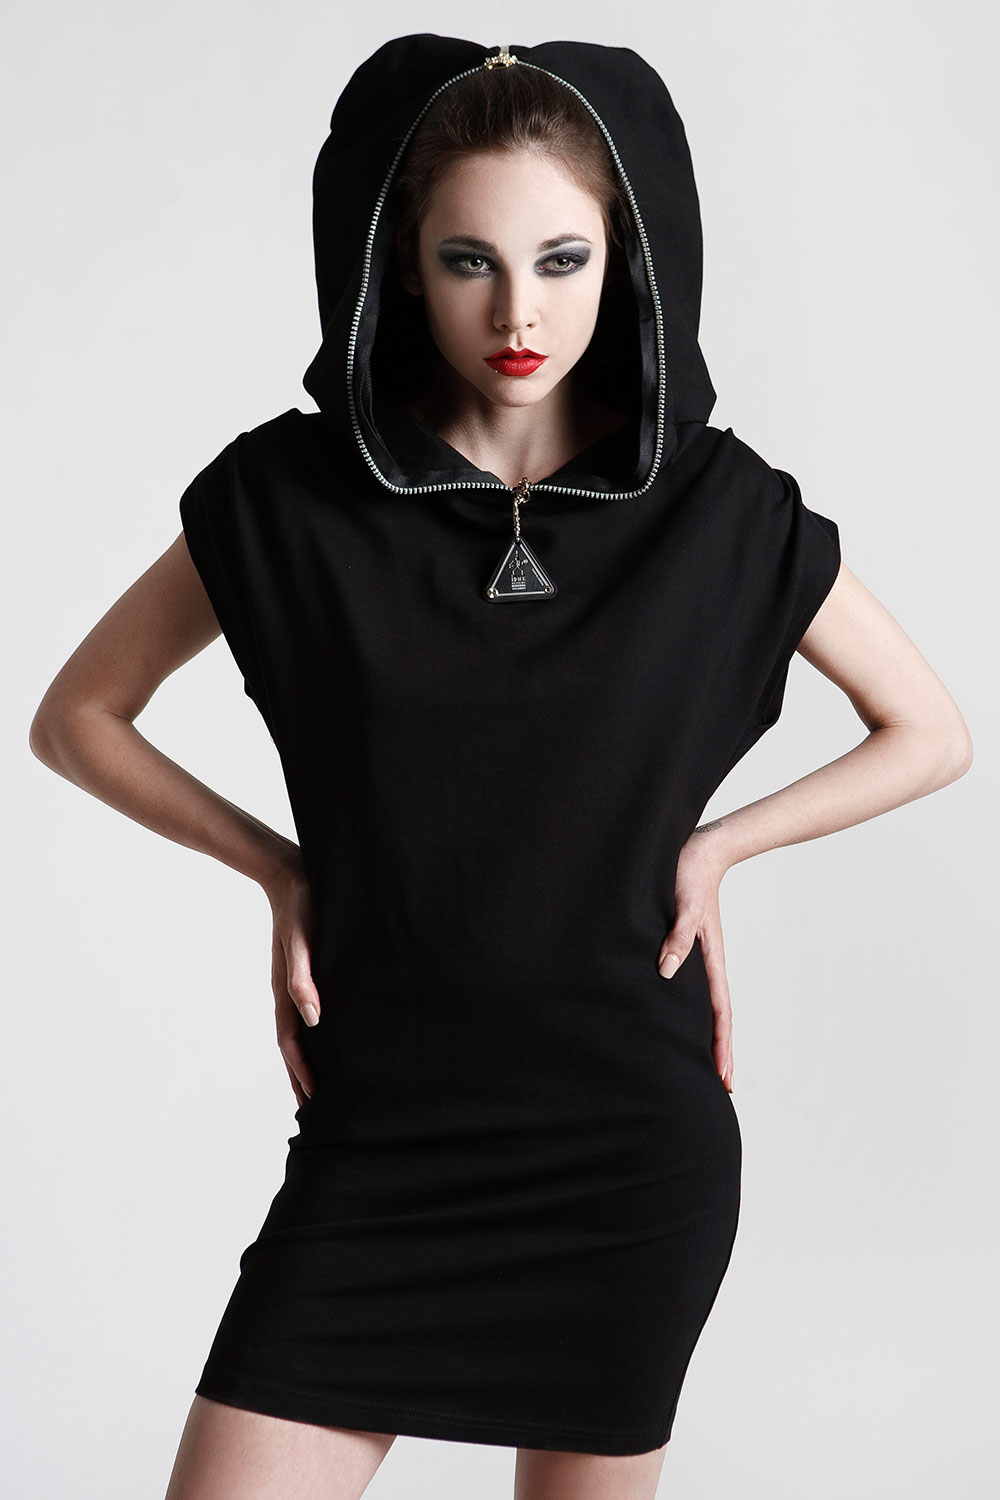 short black dress with hood in 4 way stretch lycra spandex Hi Tek